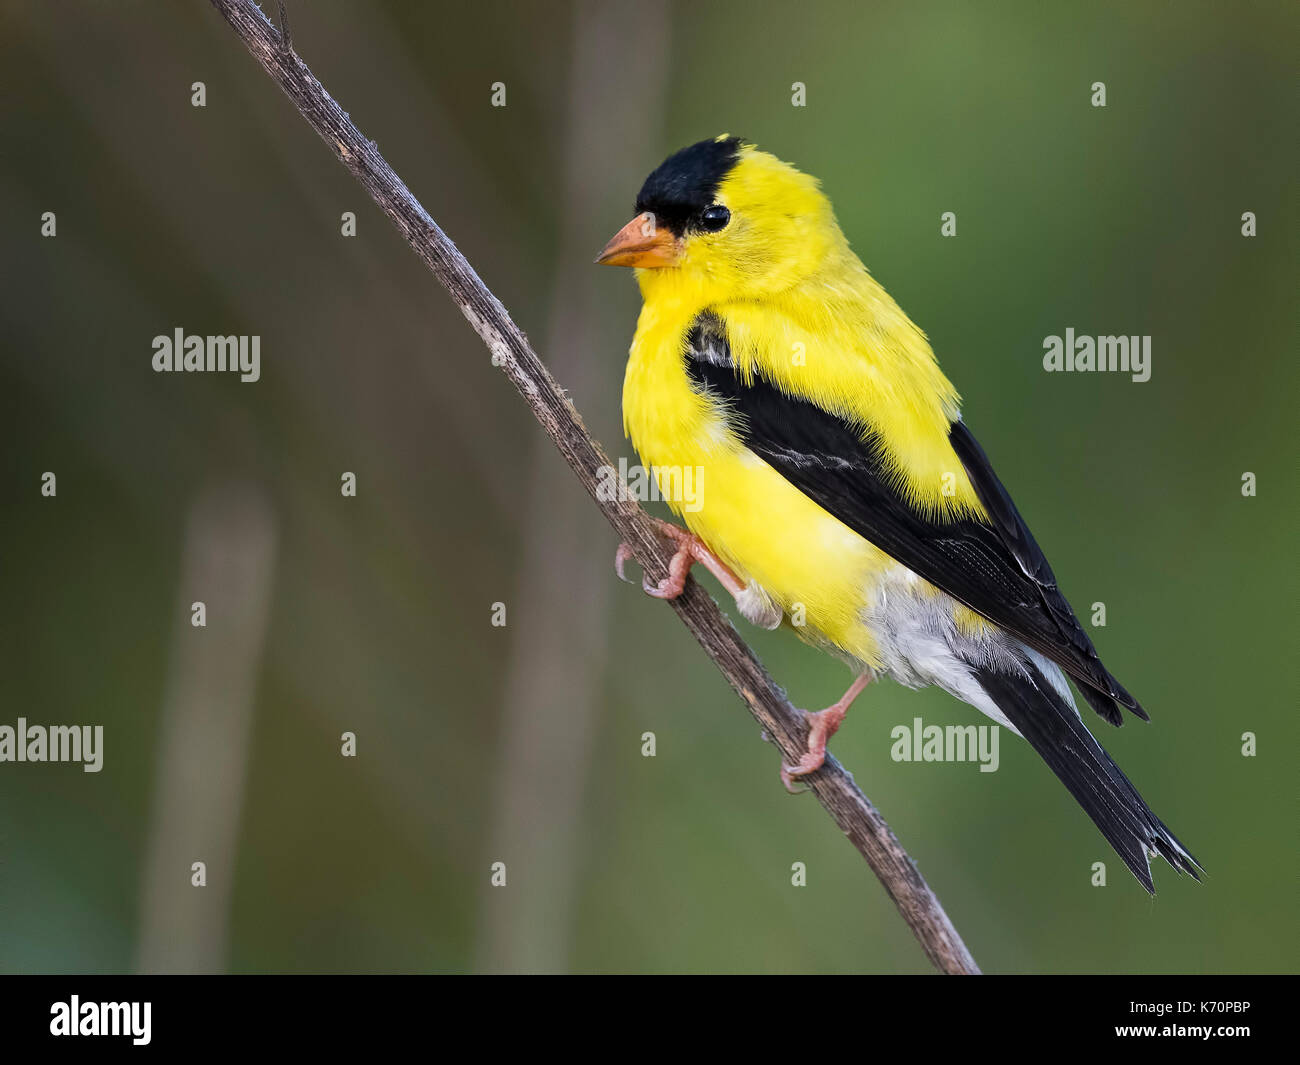 Male American Goldfinch - Stock Image